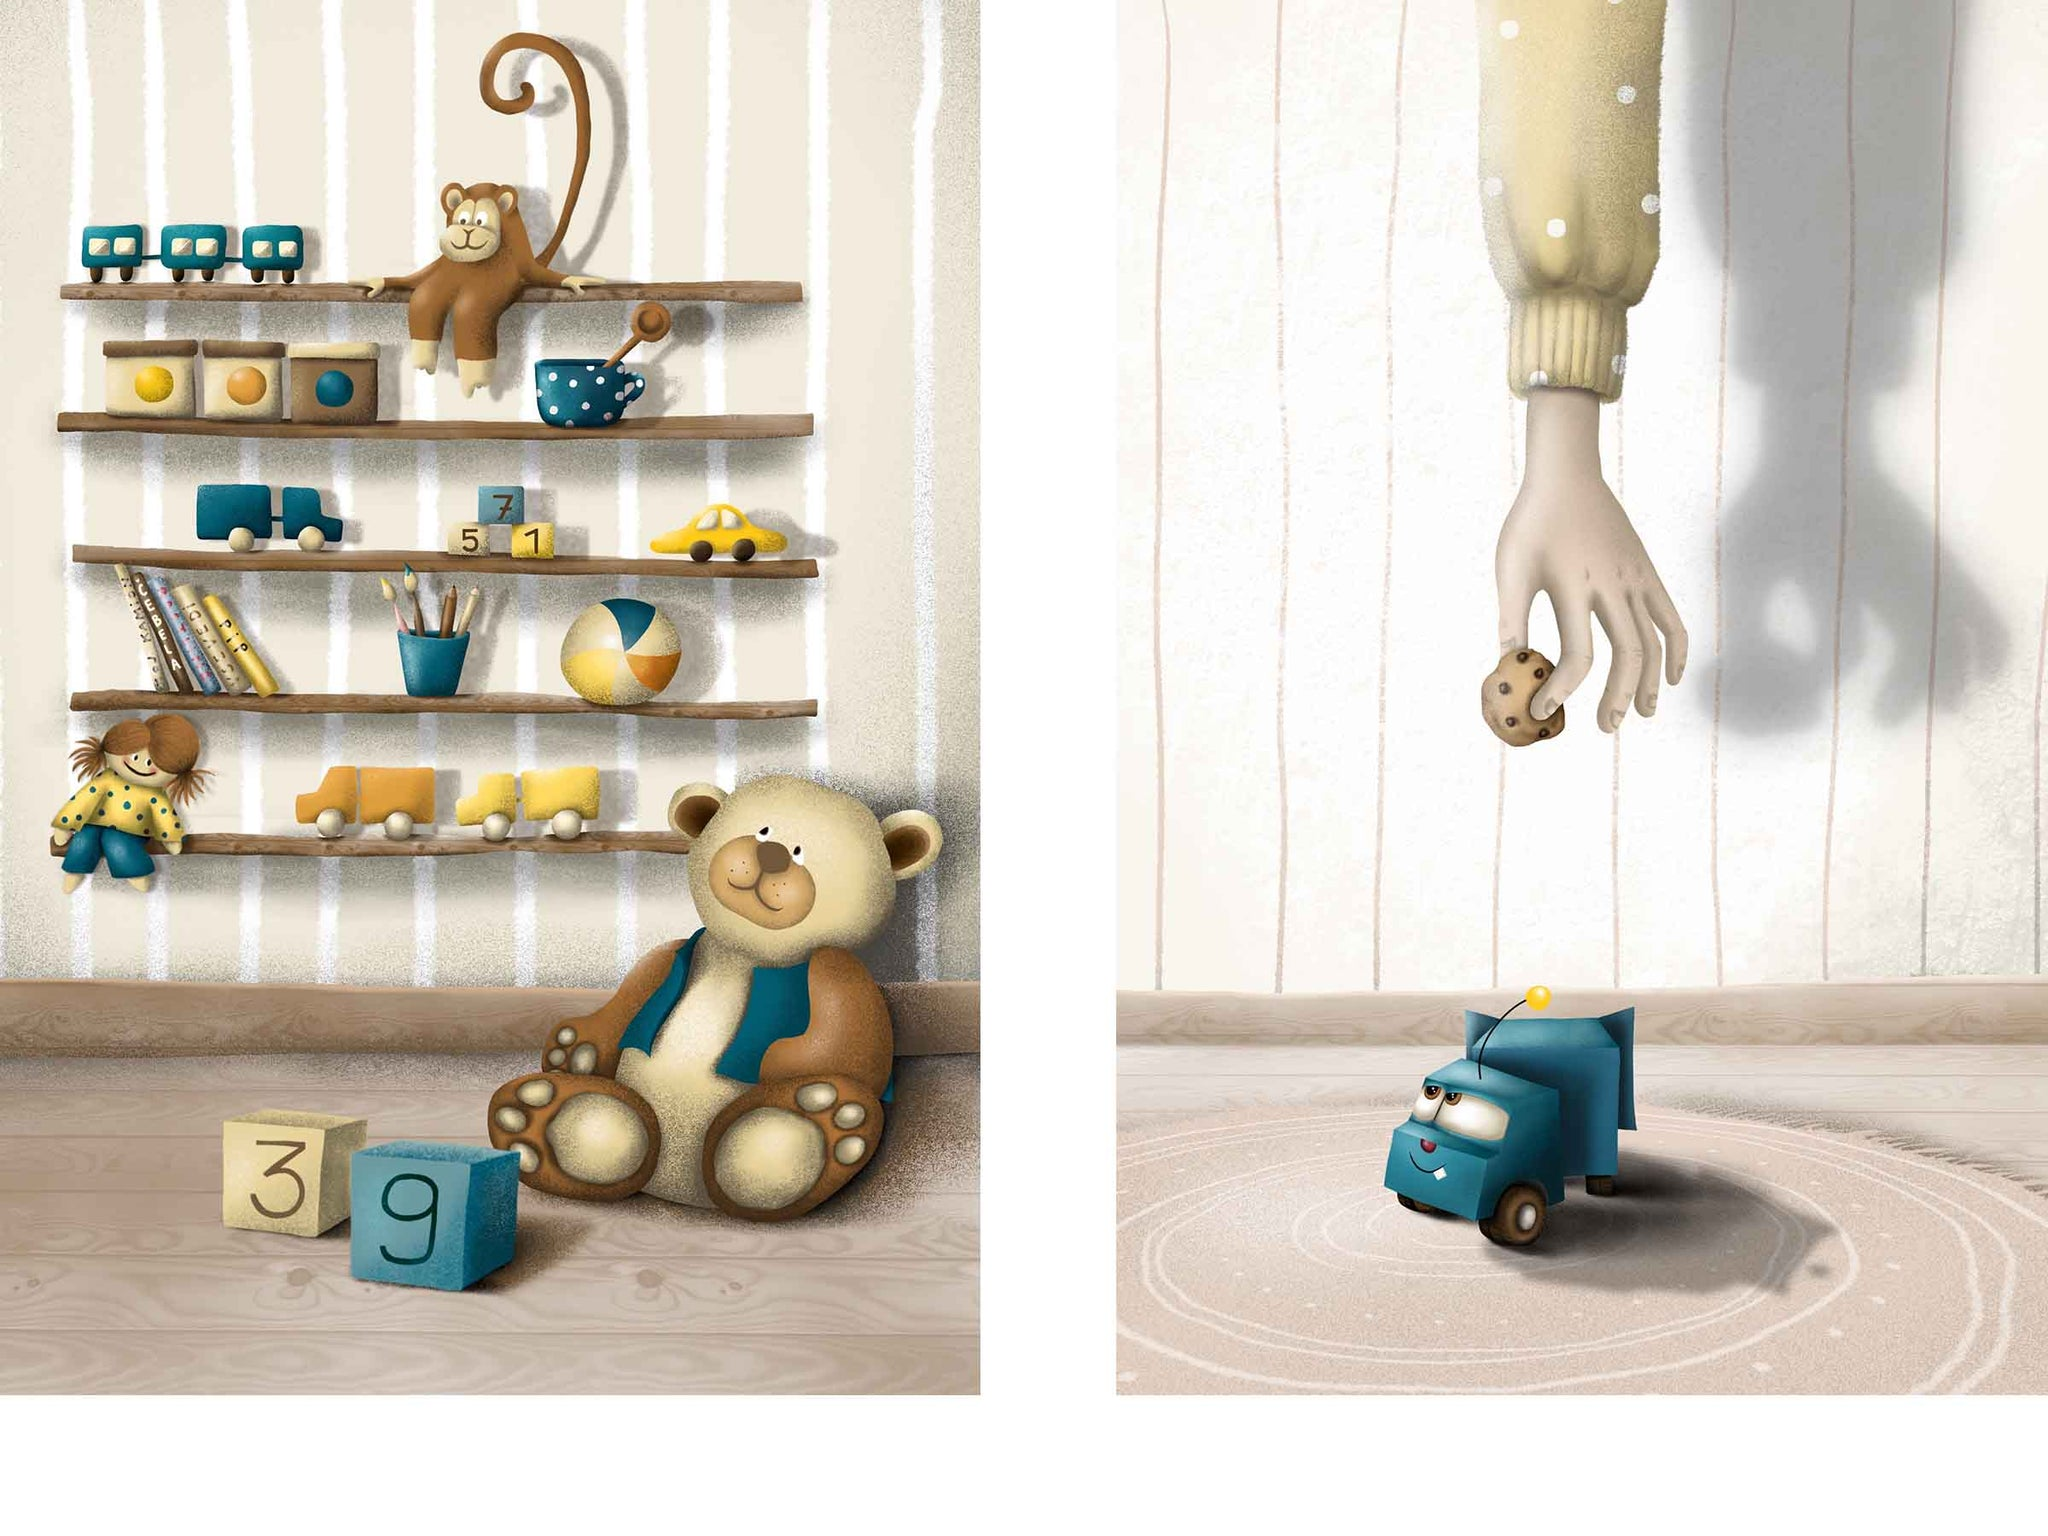 two different children's illustrations, left: shelves with several toys, right: a hand holding a cookie and offering it to a truck toy